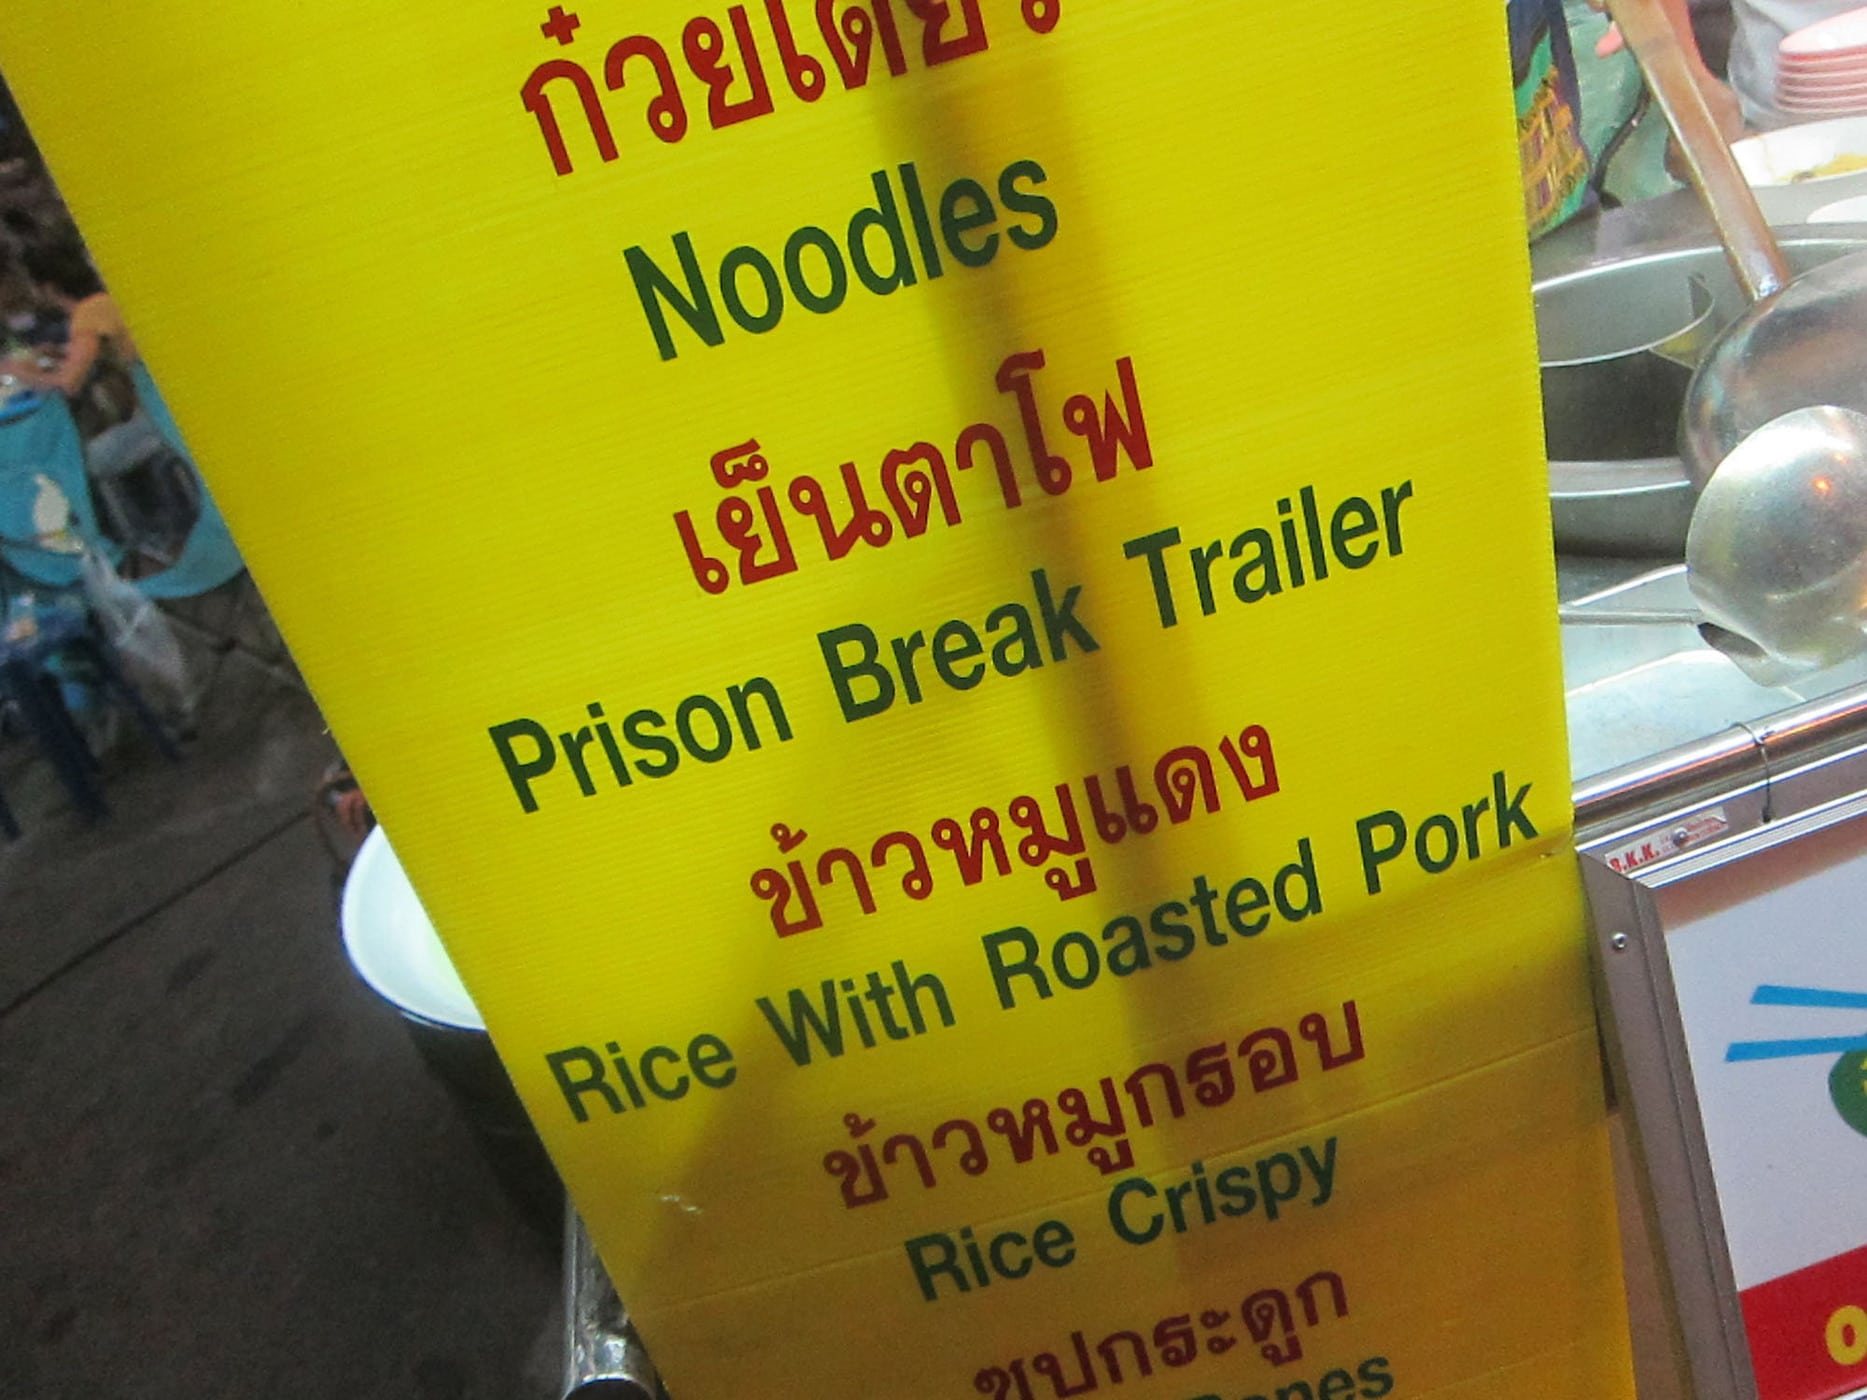 Prison Break Trailer on the menu in Chiang Mai, Thailand.